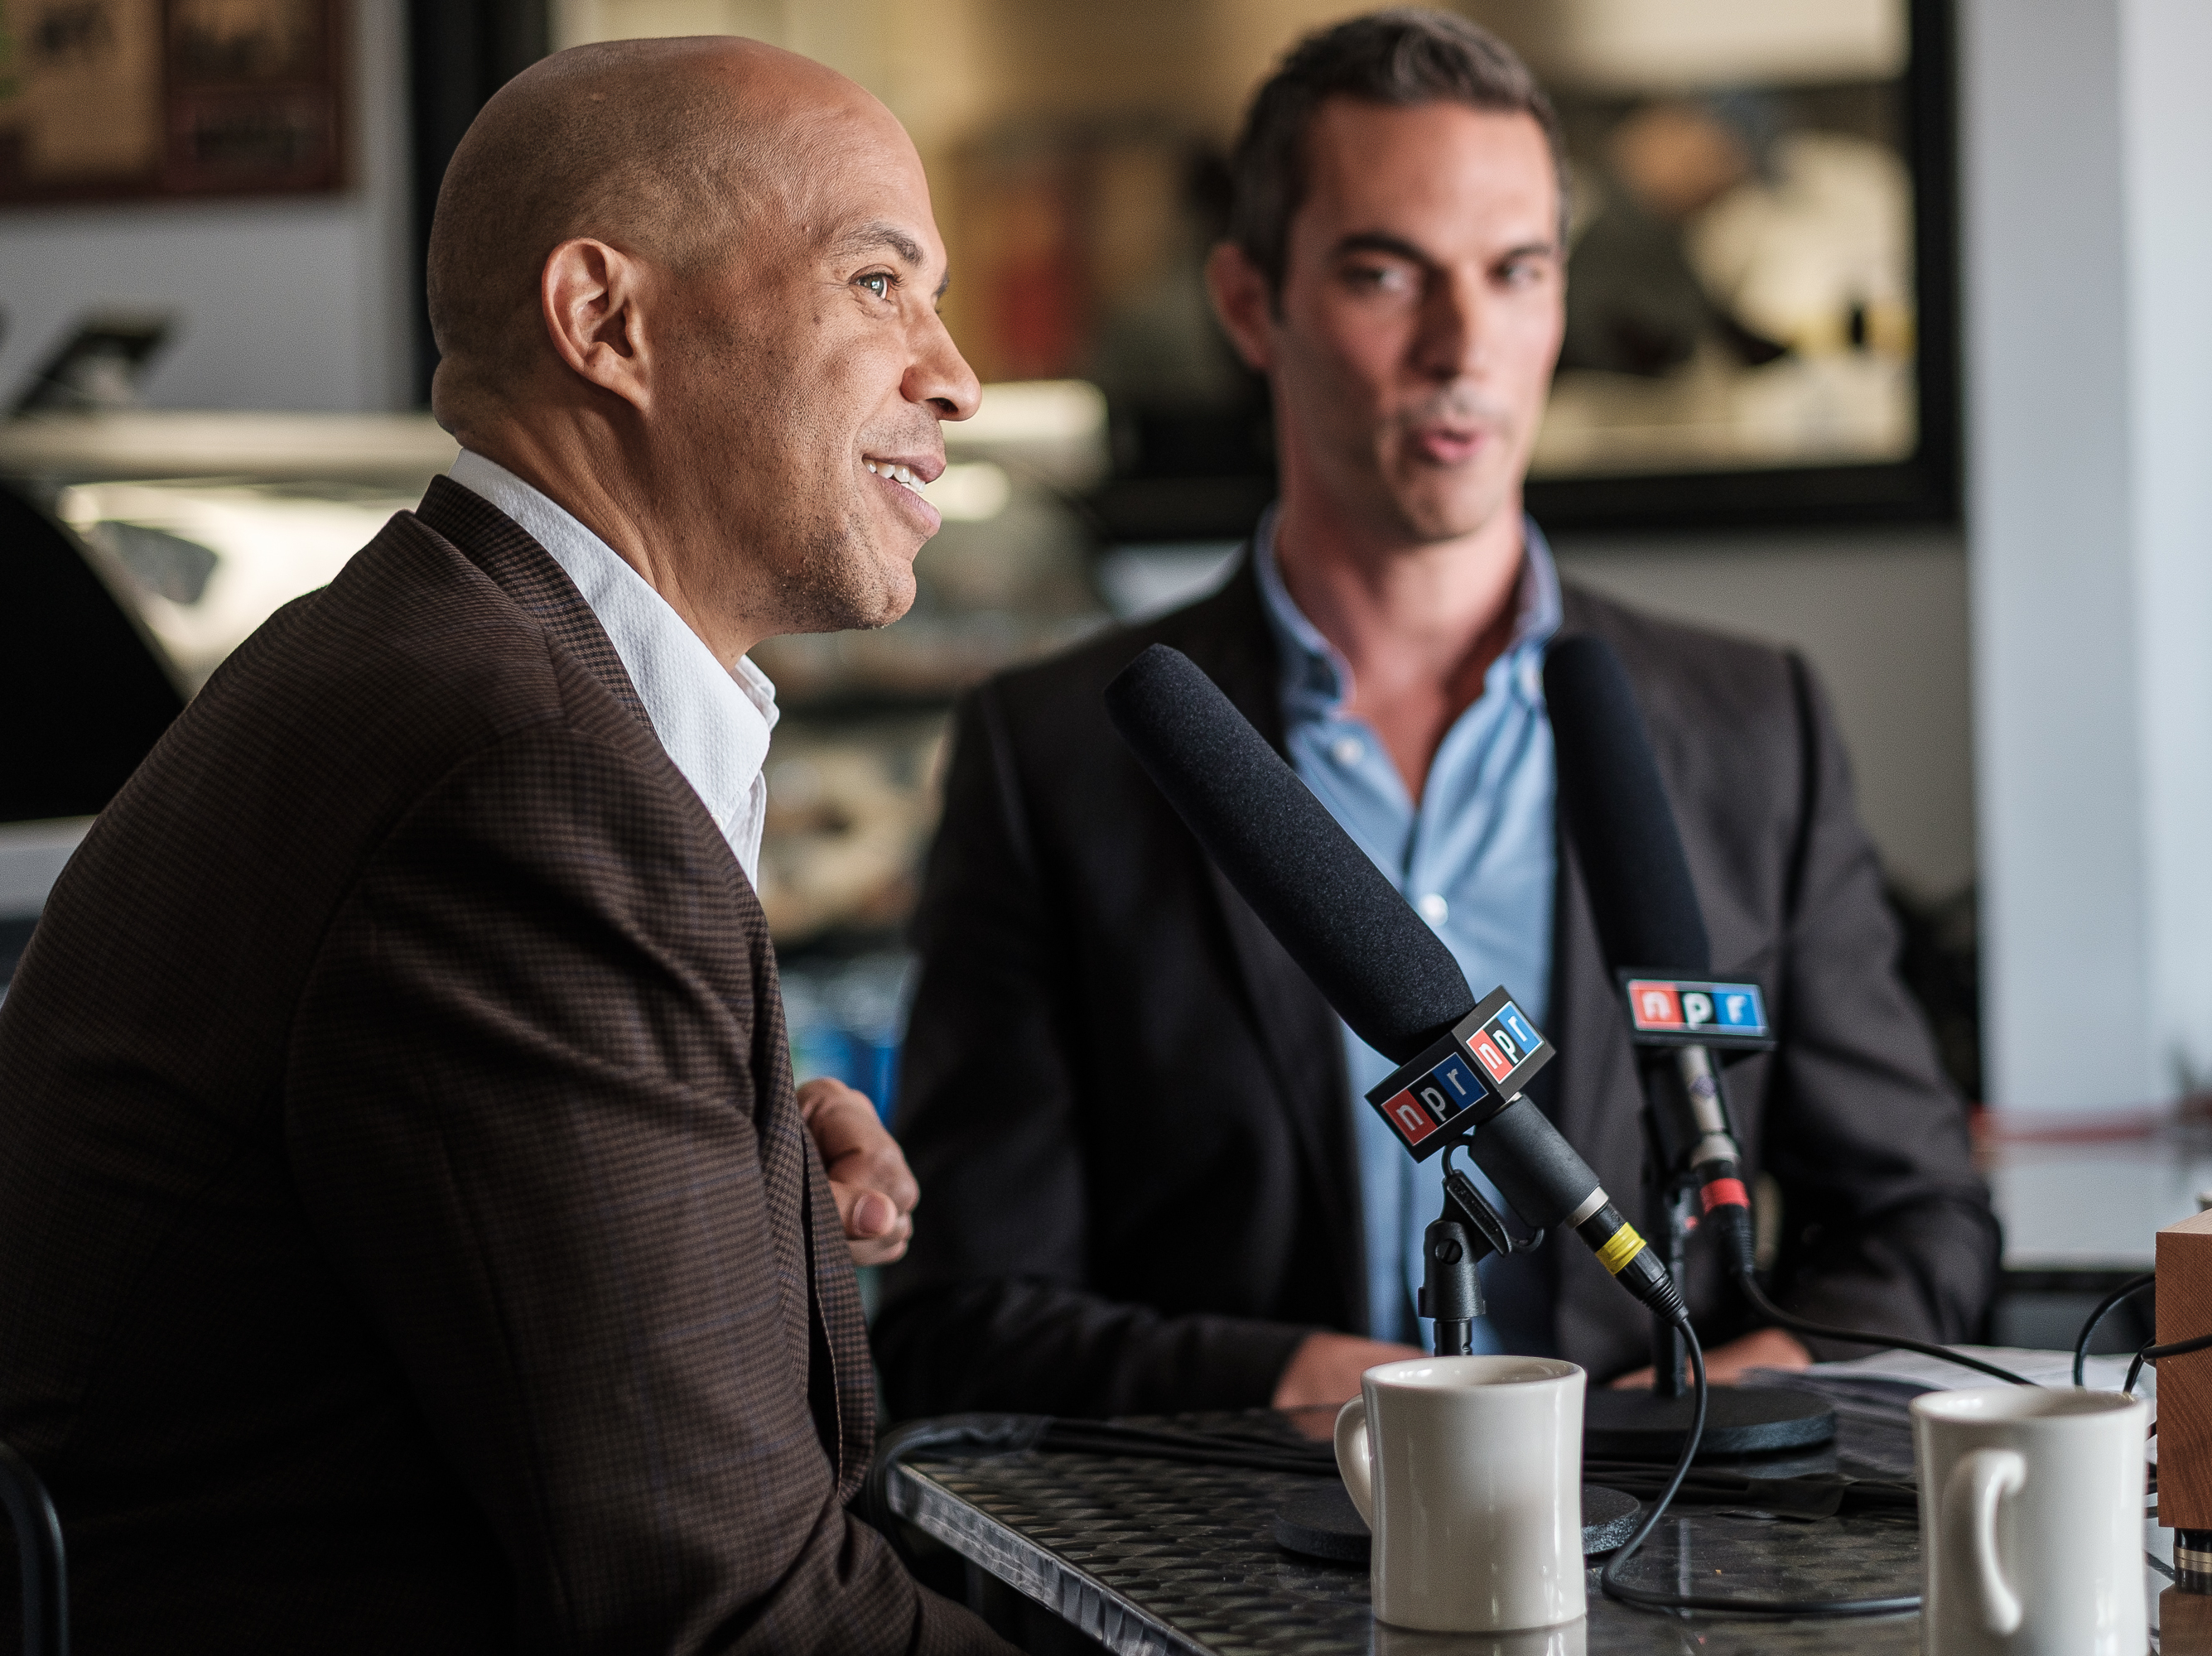 Cory Booker Asked About Struggles With Black Voters: 'Let My Work Speak For Me'